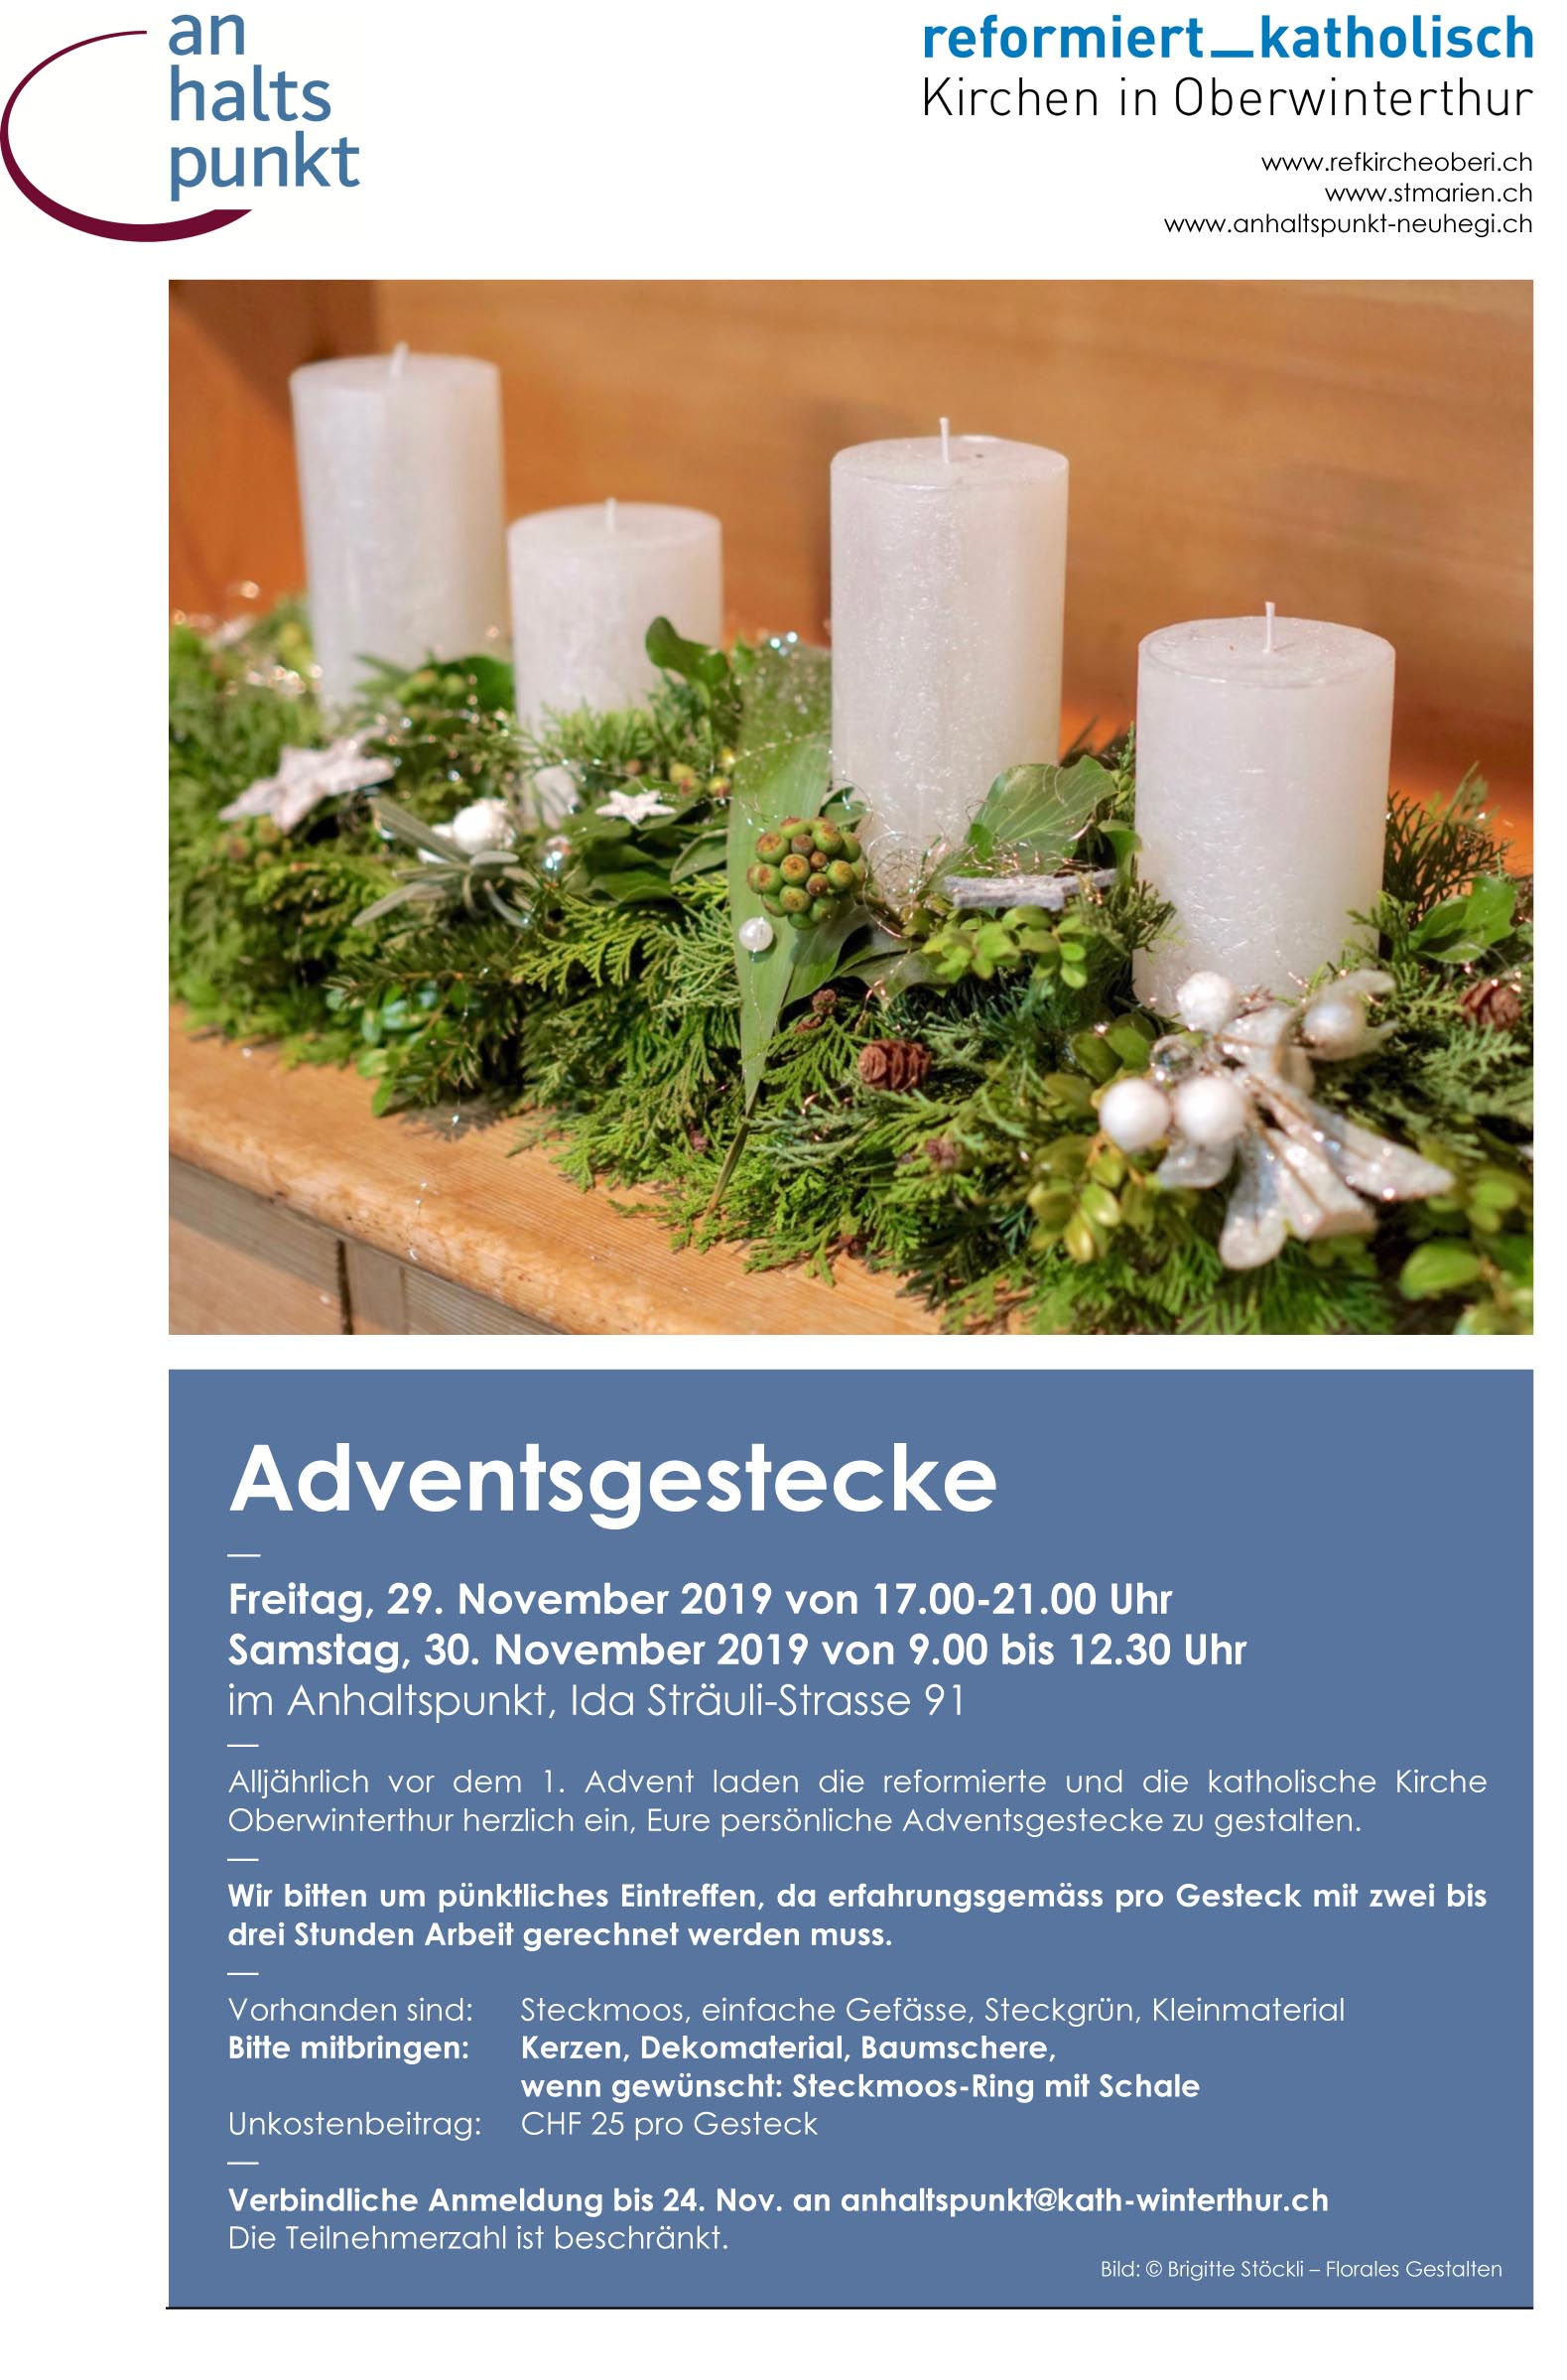 ahp Adventsgestecke 2019